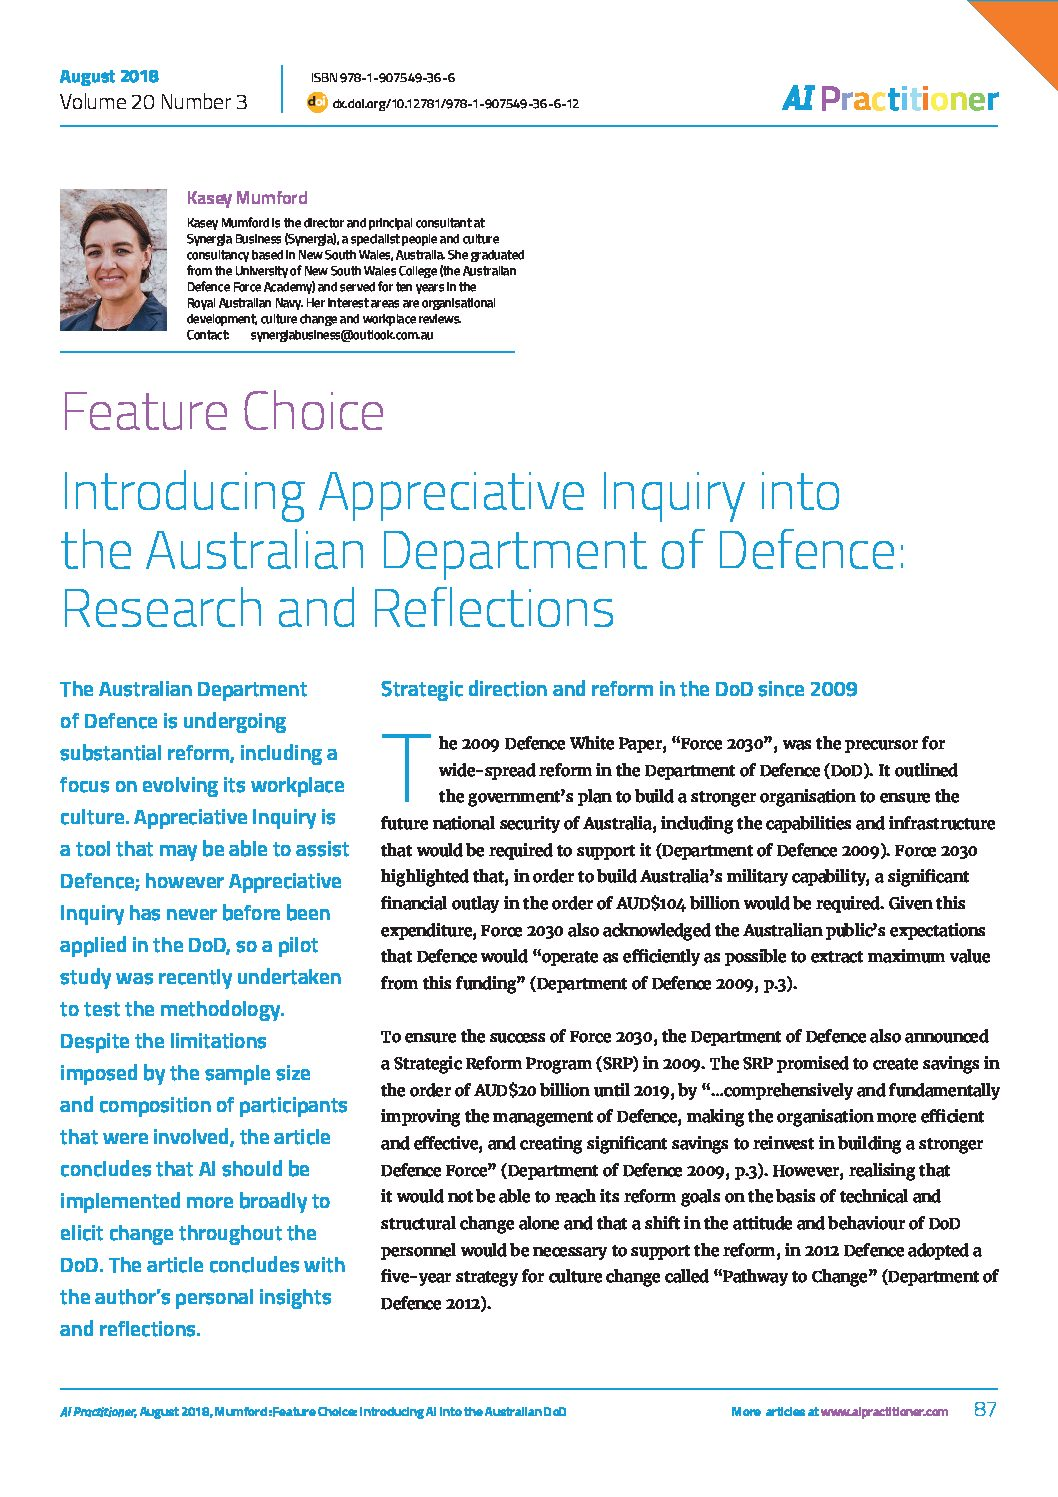 aip-august18-appreciative-voice-ai-in-australian-dept-of-defence